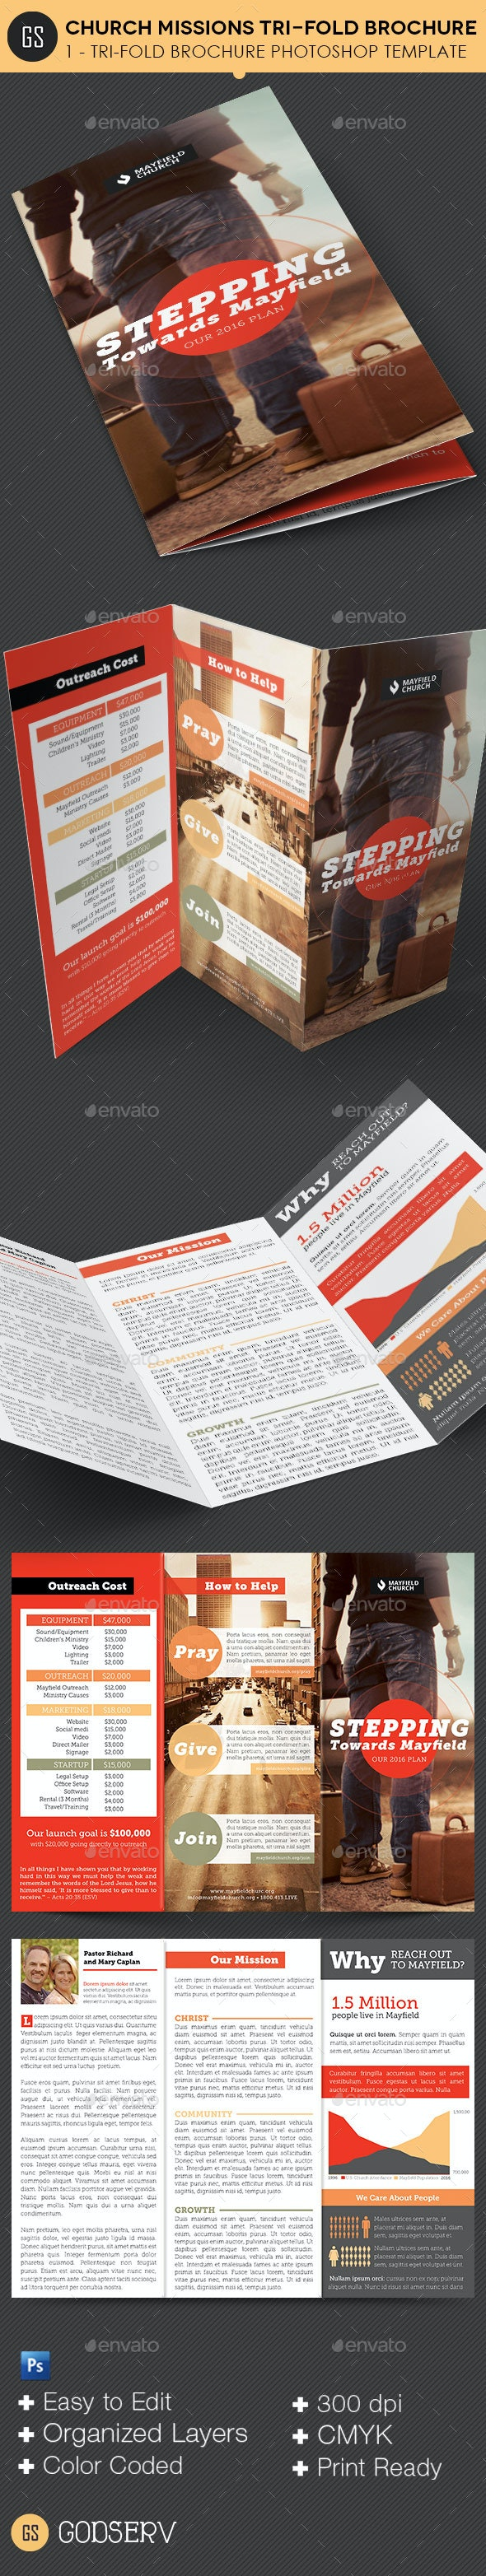 Church Missions Tri-Fold Brochure Template - Informational Brochures